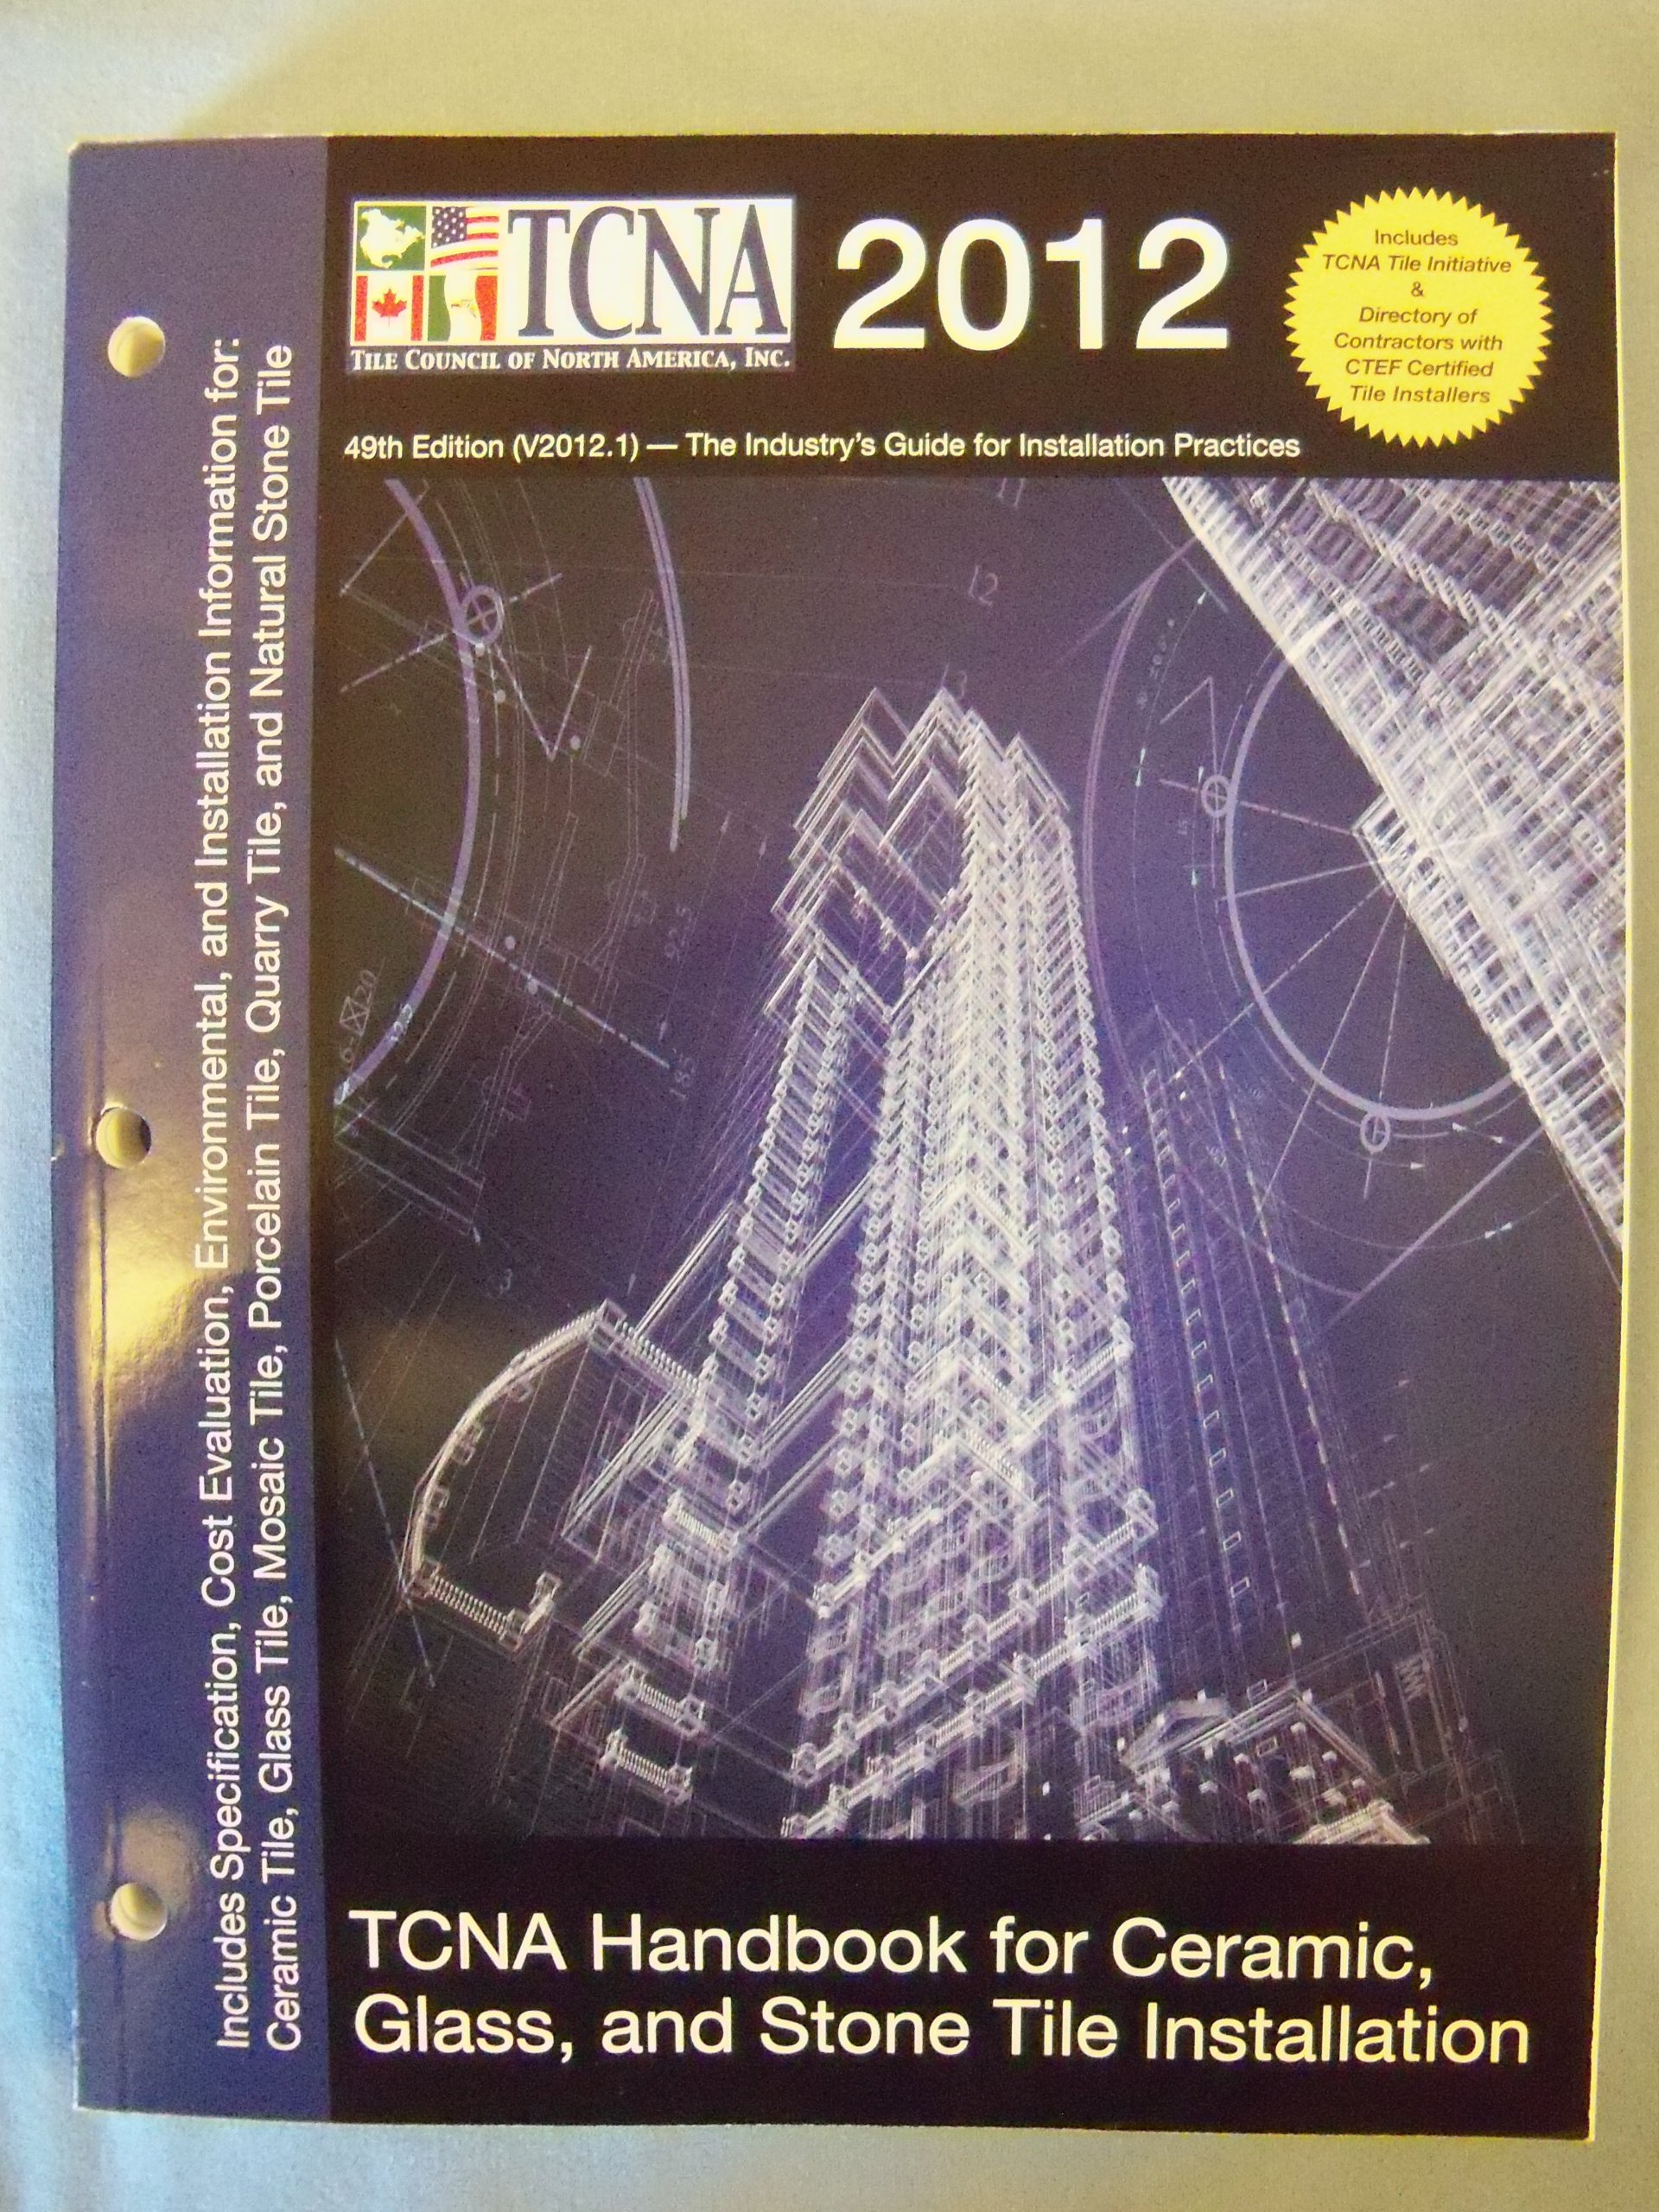 Tcna handbook for ceramic glass and stone tile installation 2012 tcna handbook for ceramic glass and stone tile installation 2012 tile council of north america 9780984742417 amazon books dailygadgetfo Choice Image